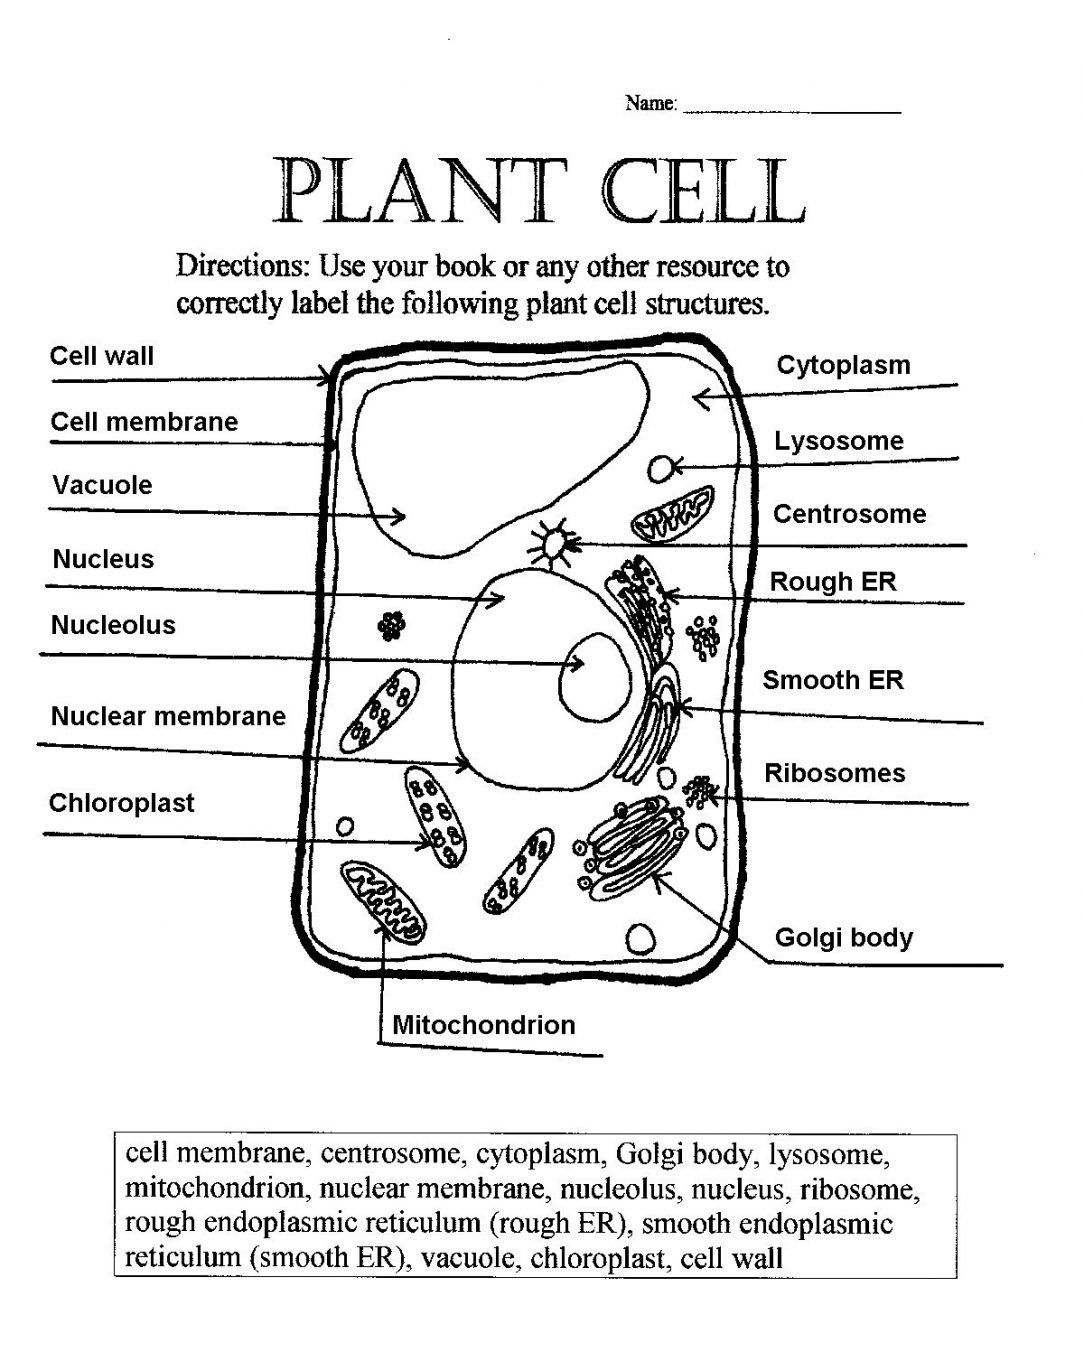 Plant Cell Coloring Key Elegant Wild Animal Coloring Plant Cell Sheet Labeled And Free Page Answer Sel Tumbuhan Sel Hewan Biologi [ 1352 x 1084 Pixel ]